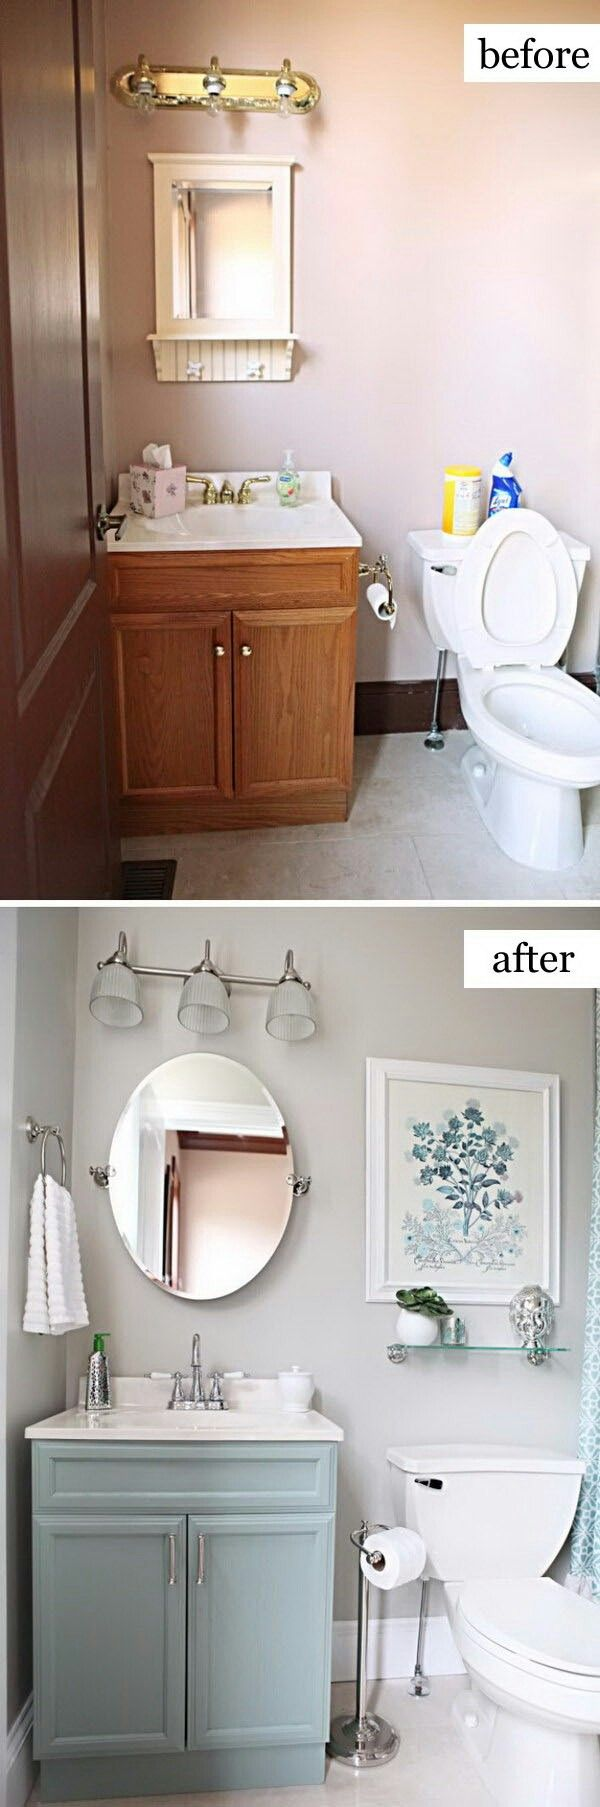 600 1807 do it yourself pinterest house bath and. Black Bedroom Furniture Sets. Home Design Ideas